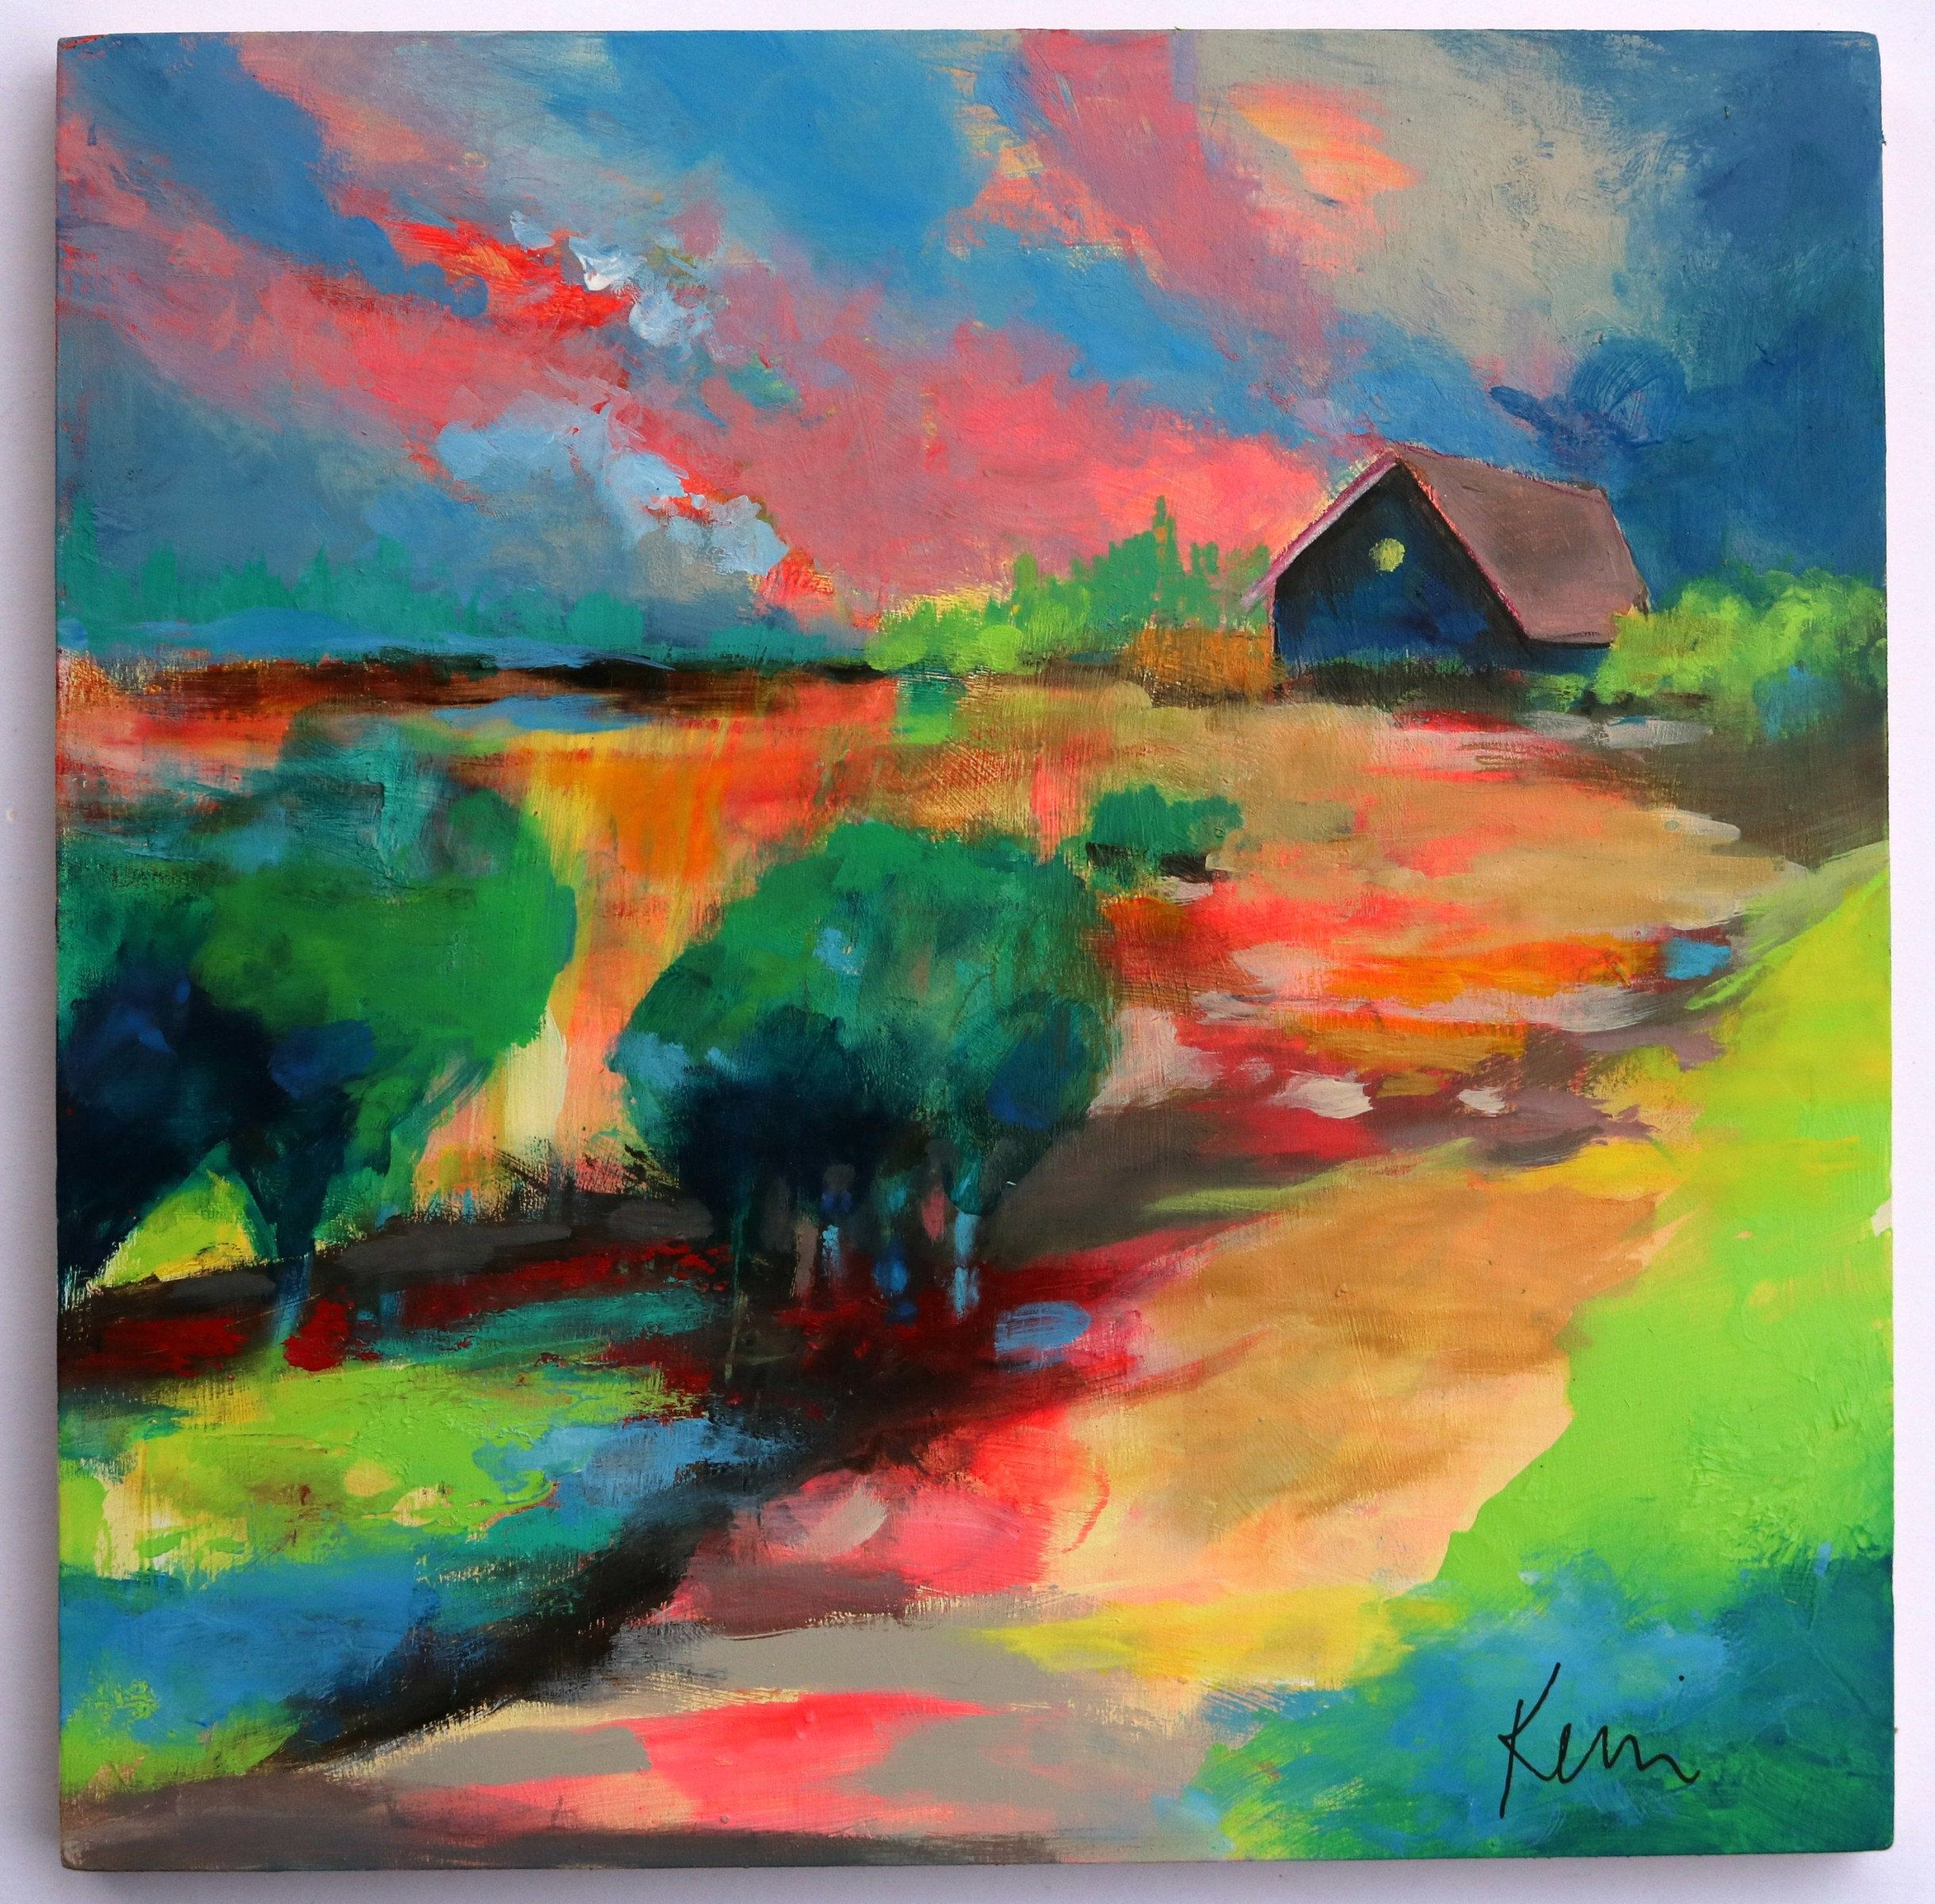 Small Abstract Landscape Painting Colorful Clouds And Country Scenery 12x12 The Path Home In 2020 Painting Colorful Landscape Paintings Landscape Paintings